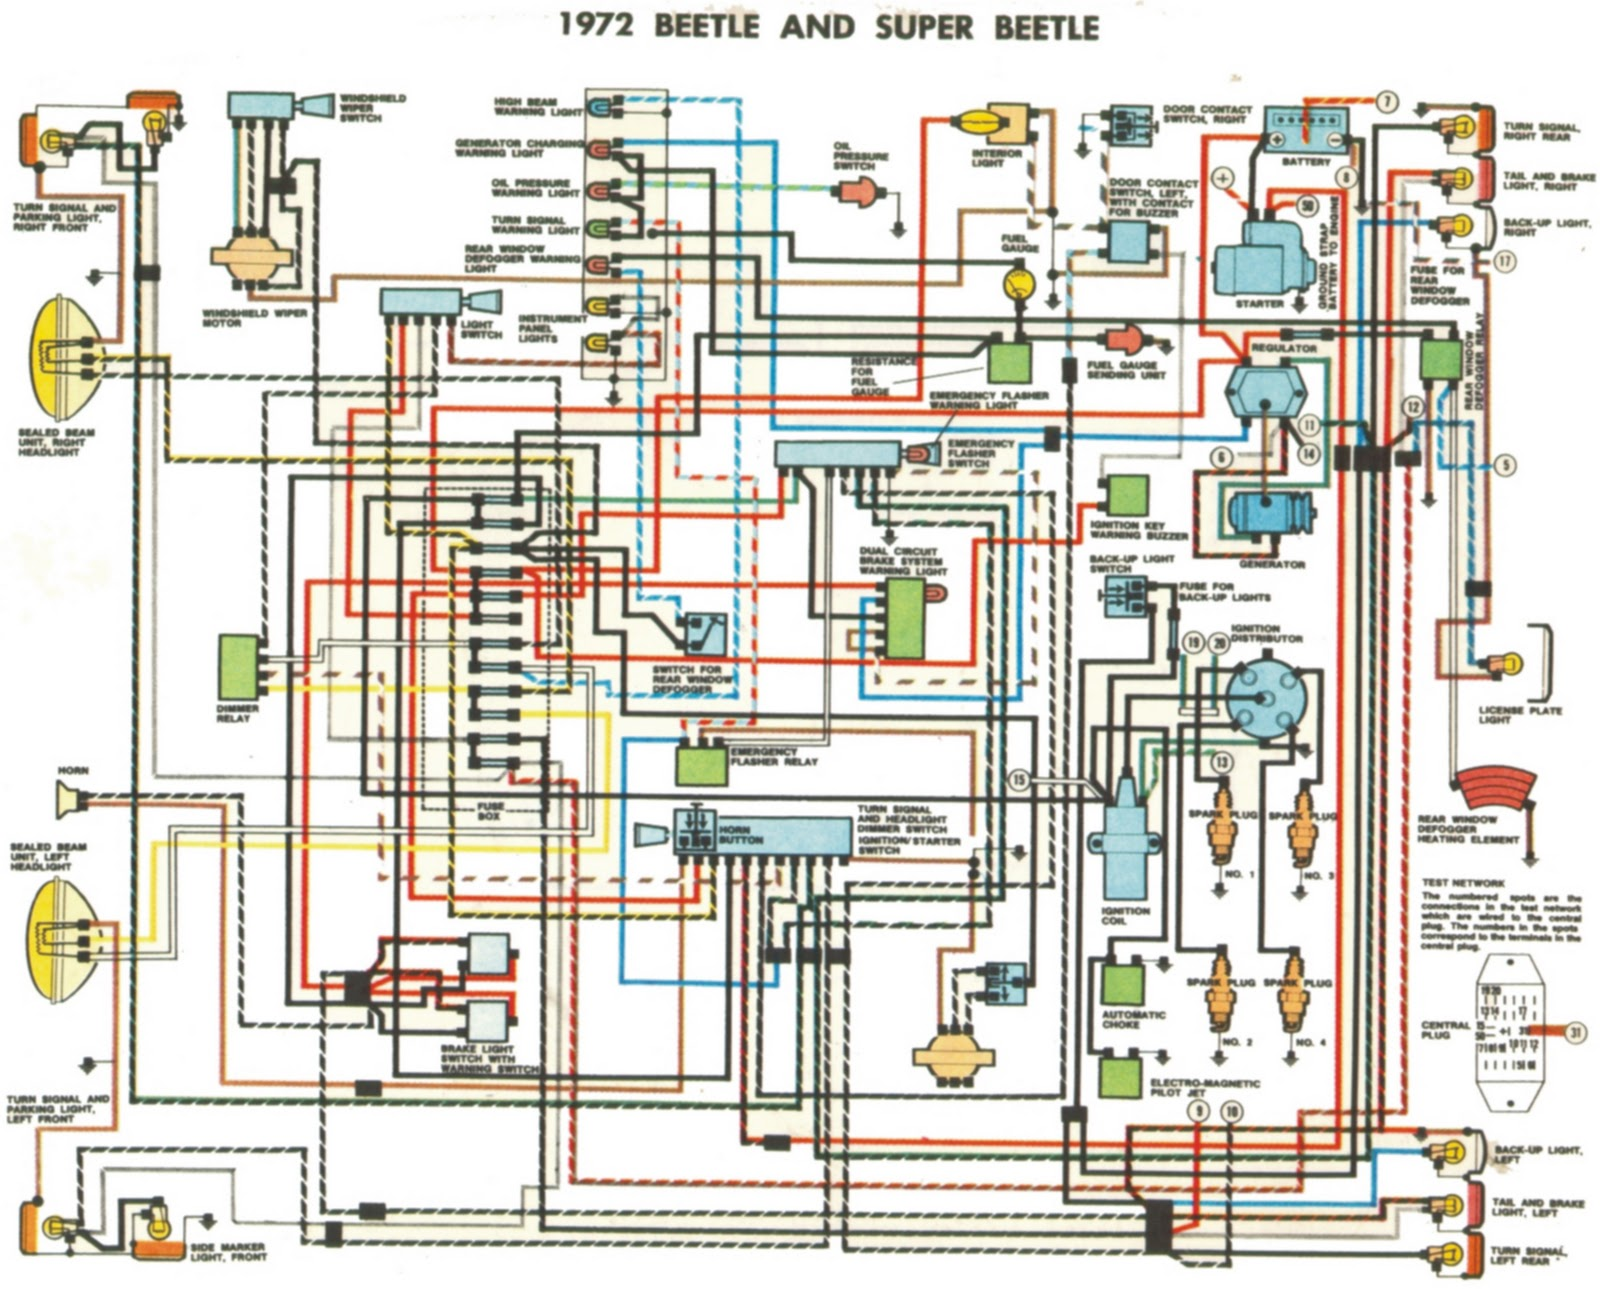 71 vw beetle wiring diagram wiring diagram third level vw ignition coil wiring diagram 1971 super beetle wiring diagram [ 1600 x 1289 Pixel ]